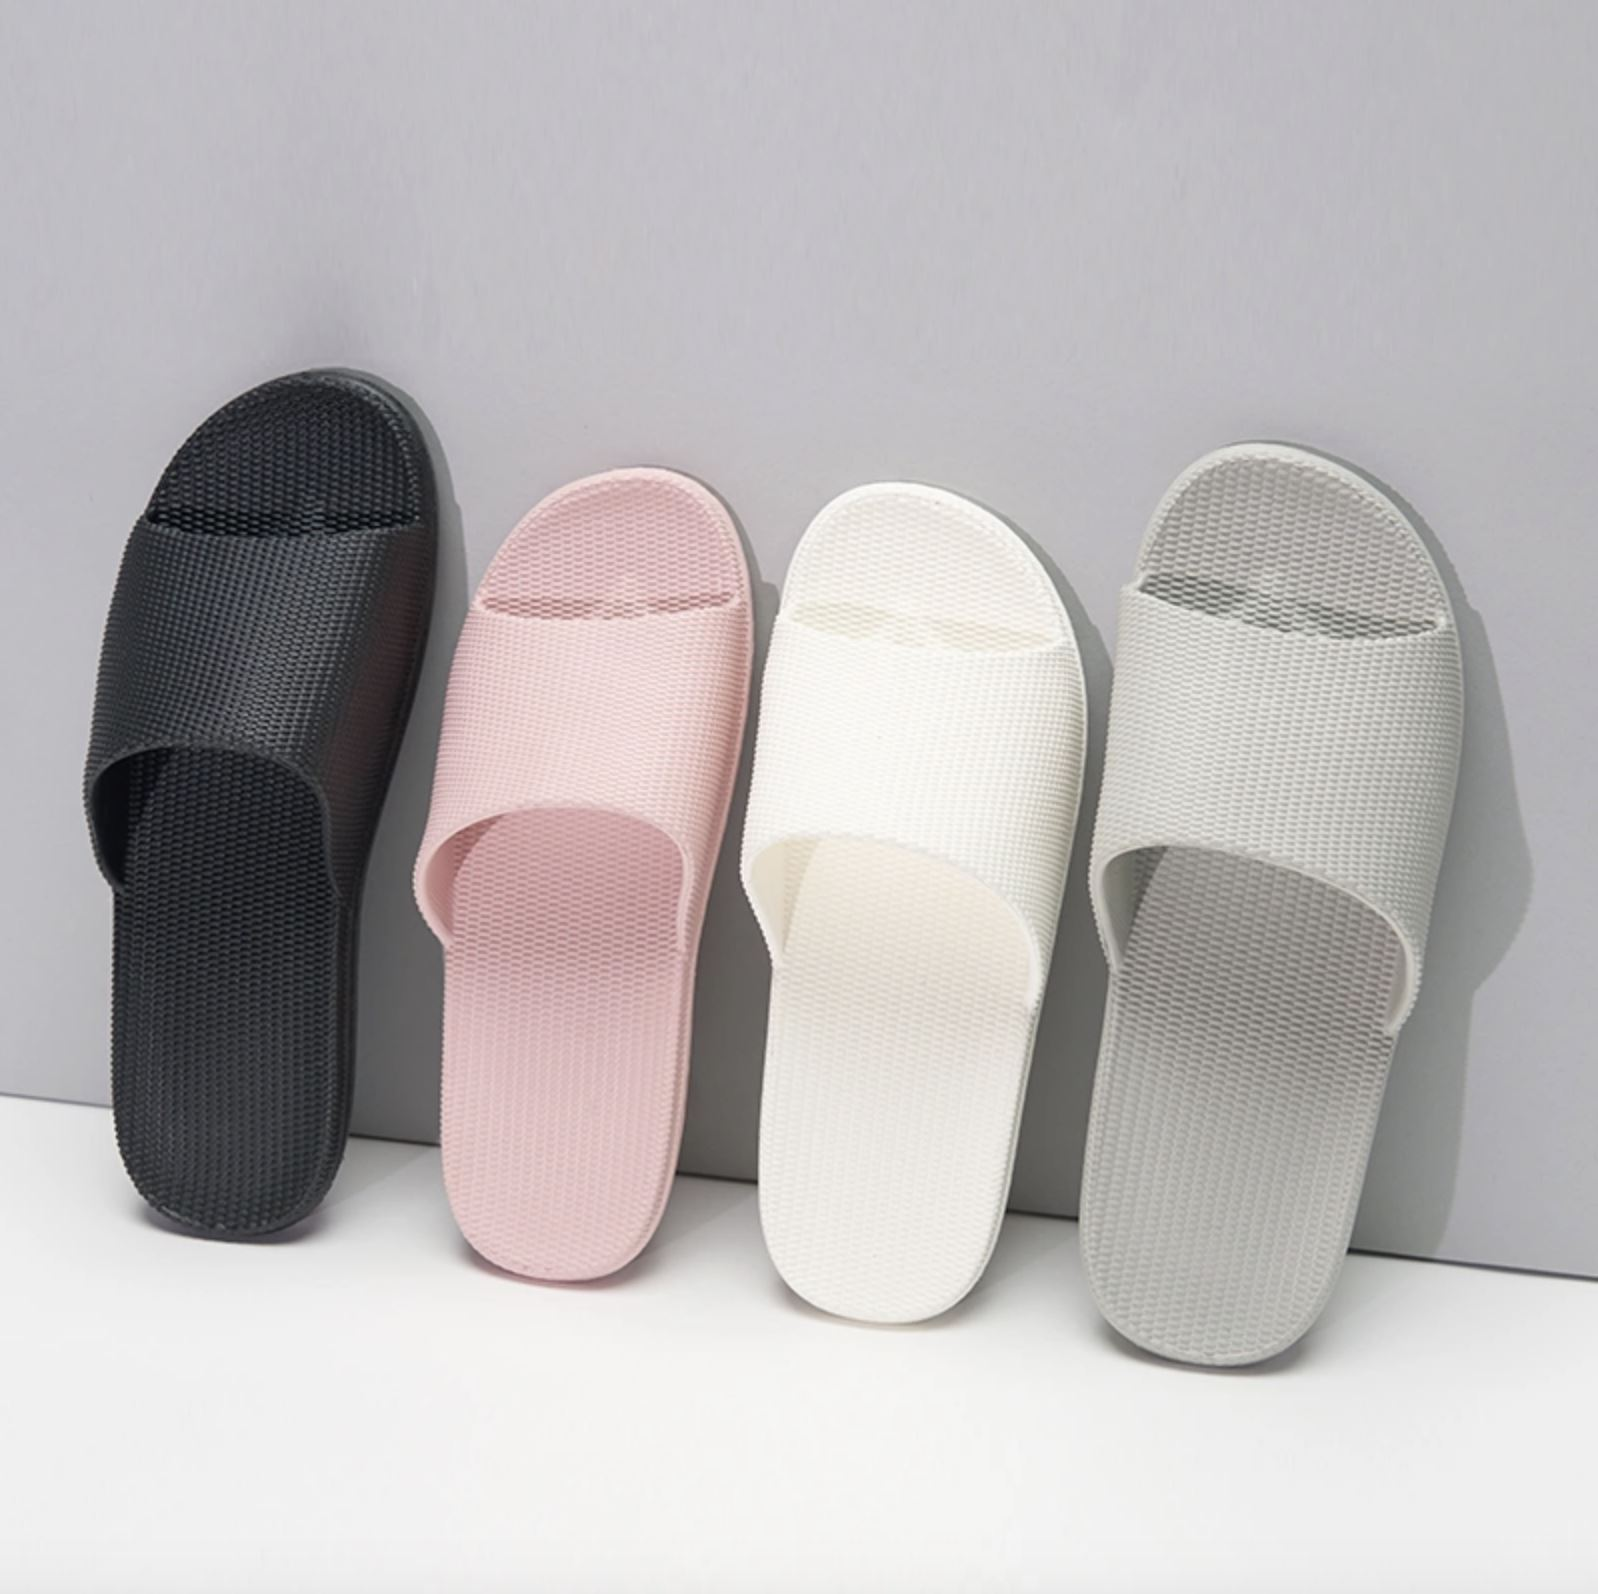 Unisex Open Toe House Slippers - Multiple Colors Home & kitchen LIFEASE